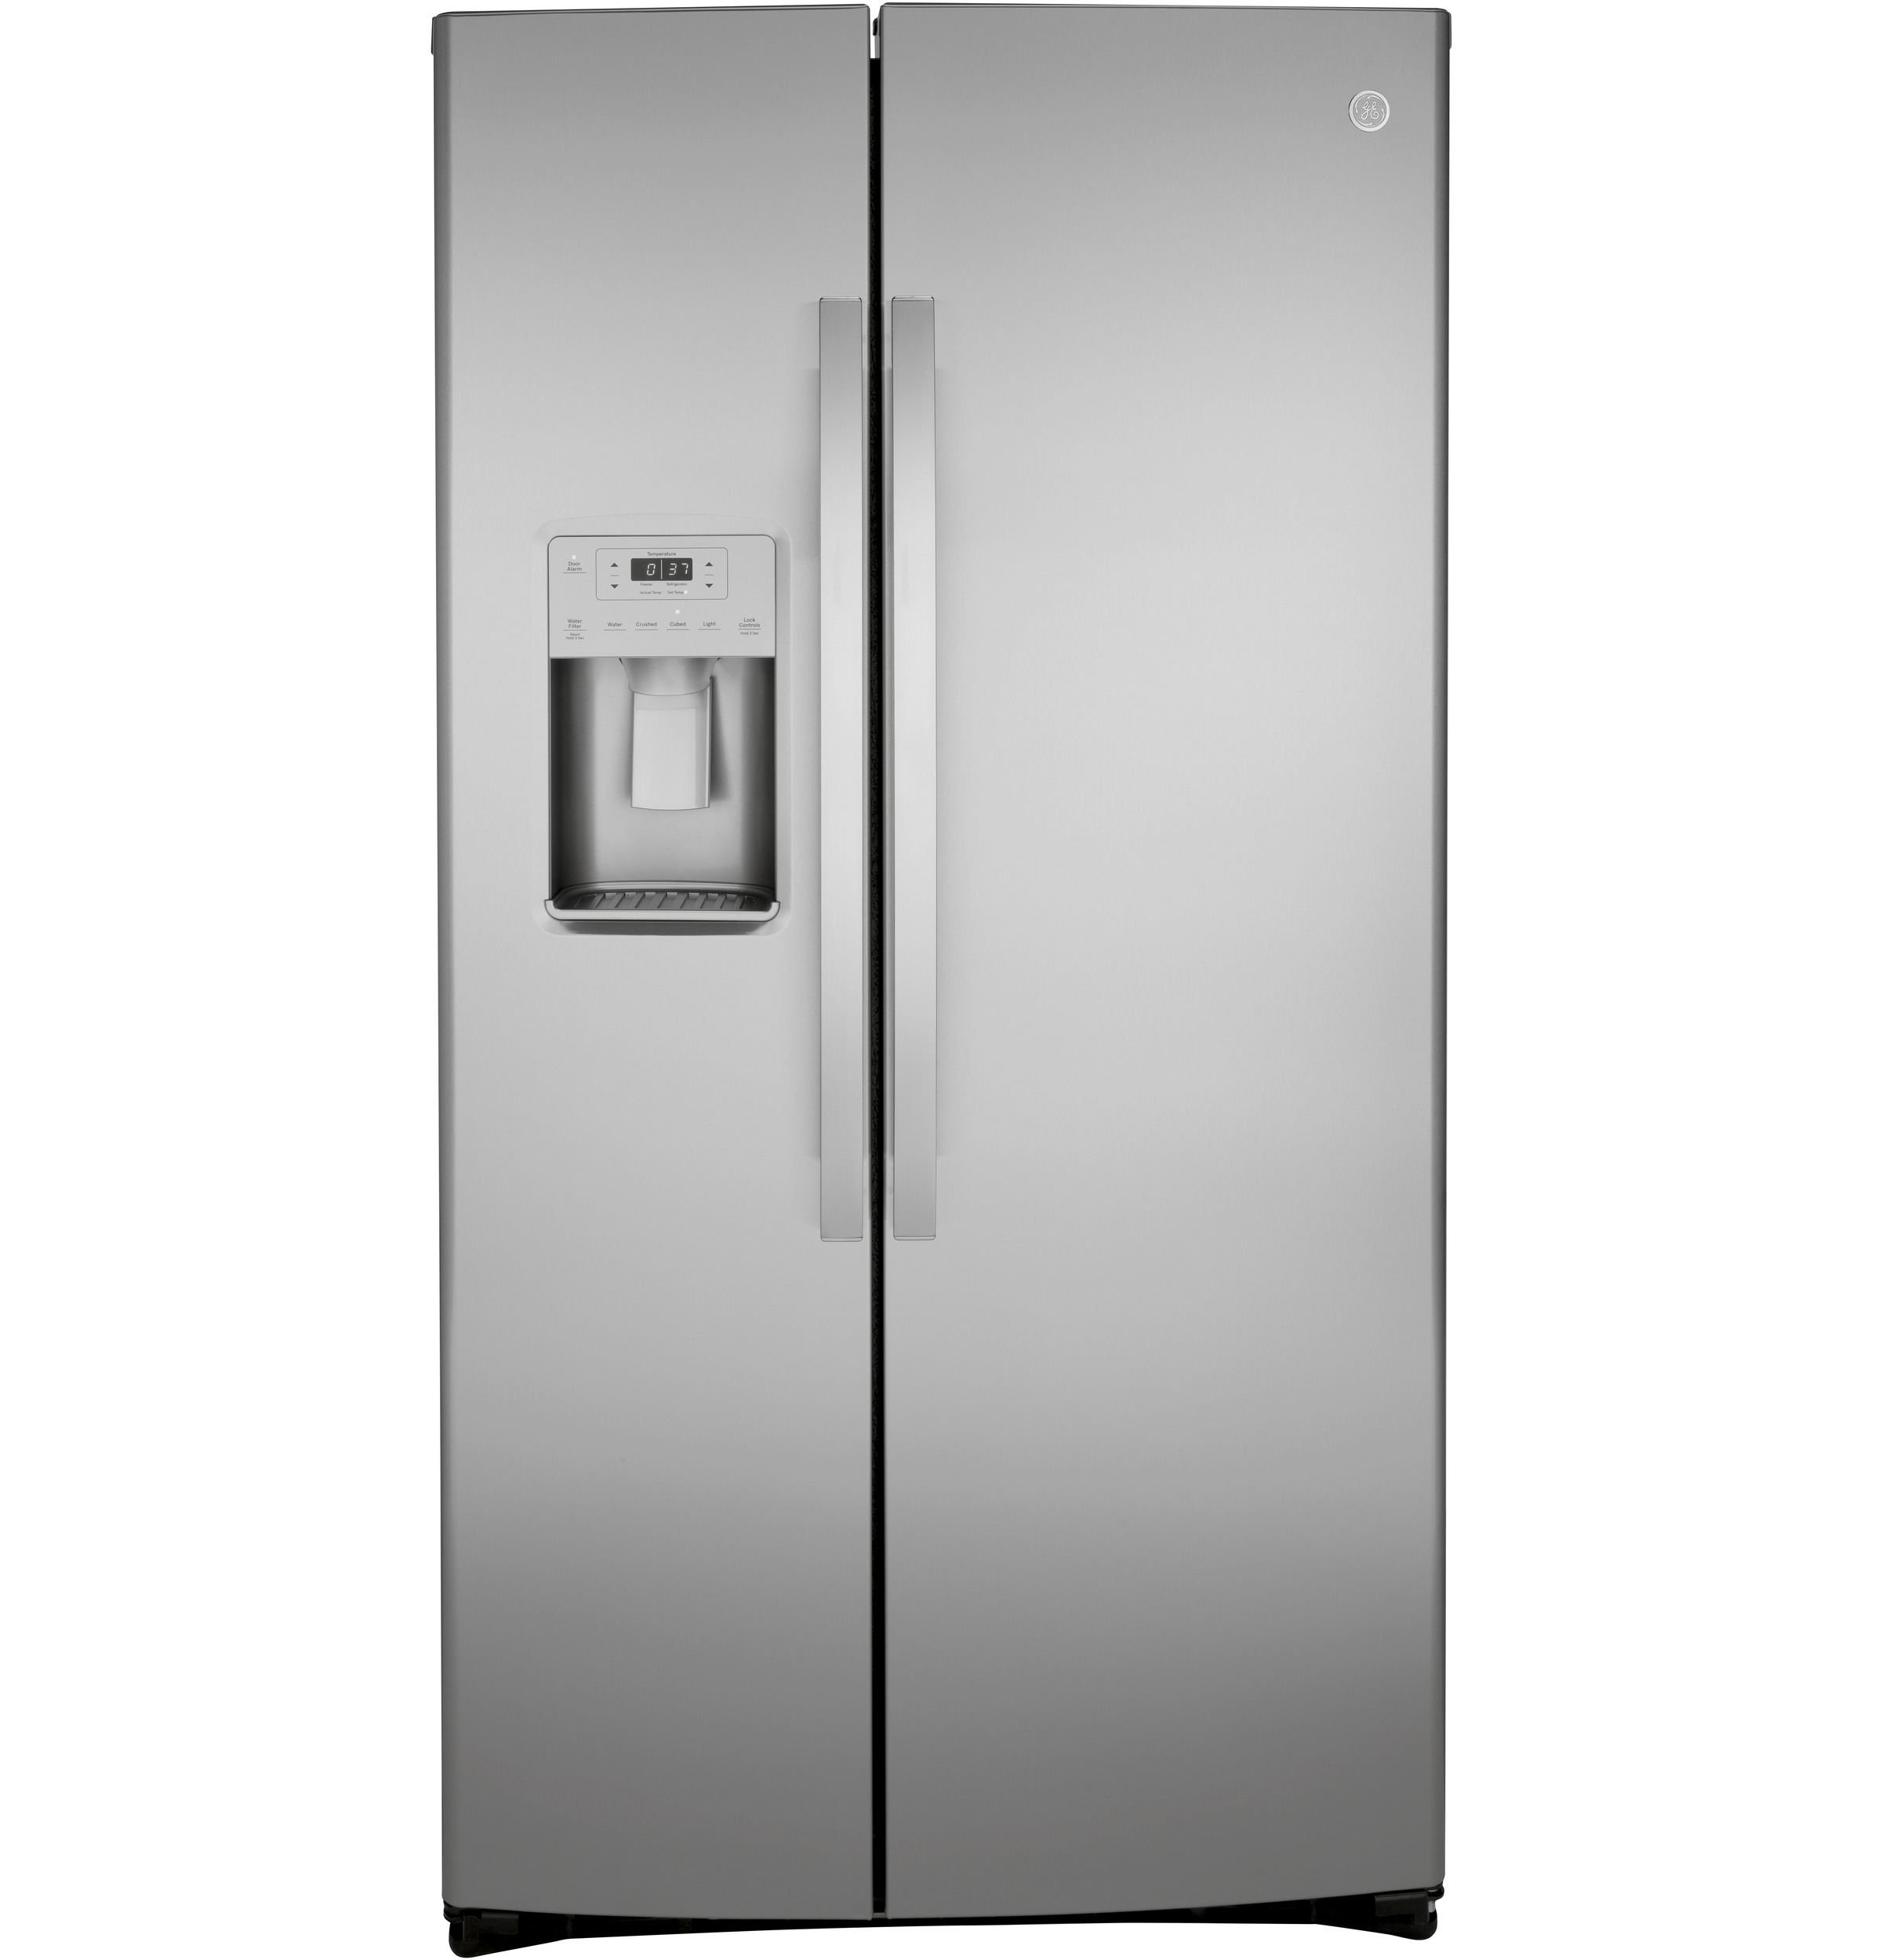 GE GE® 25.1 Cu. Ft. Fingerprint Resistant Side-By-Side Refrigerator